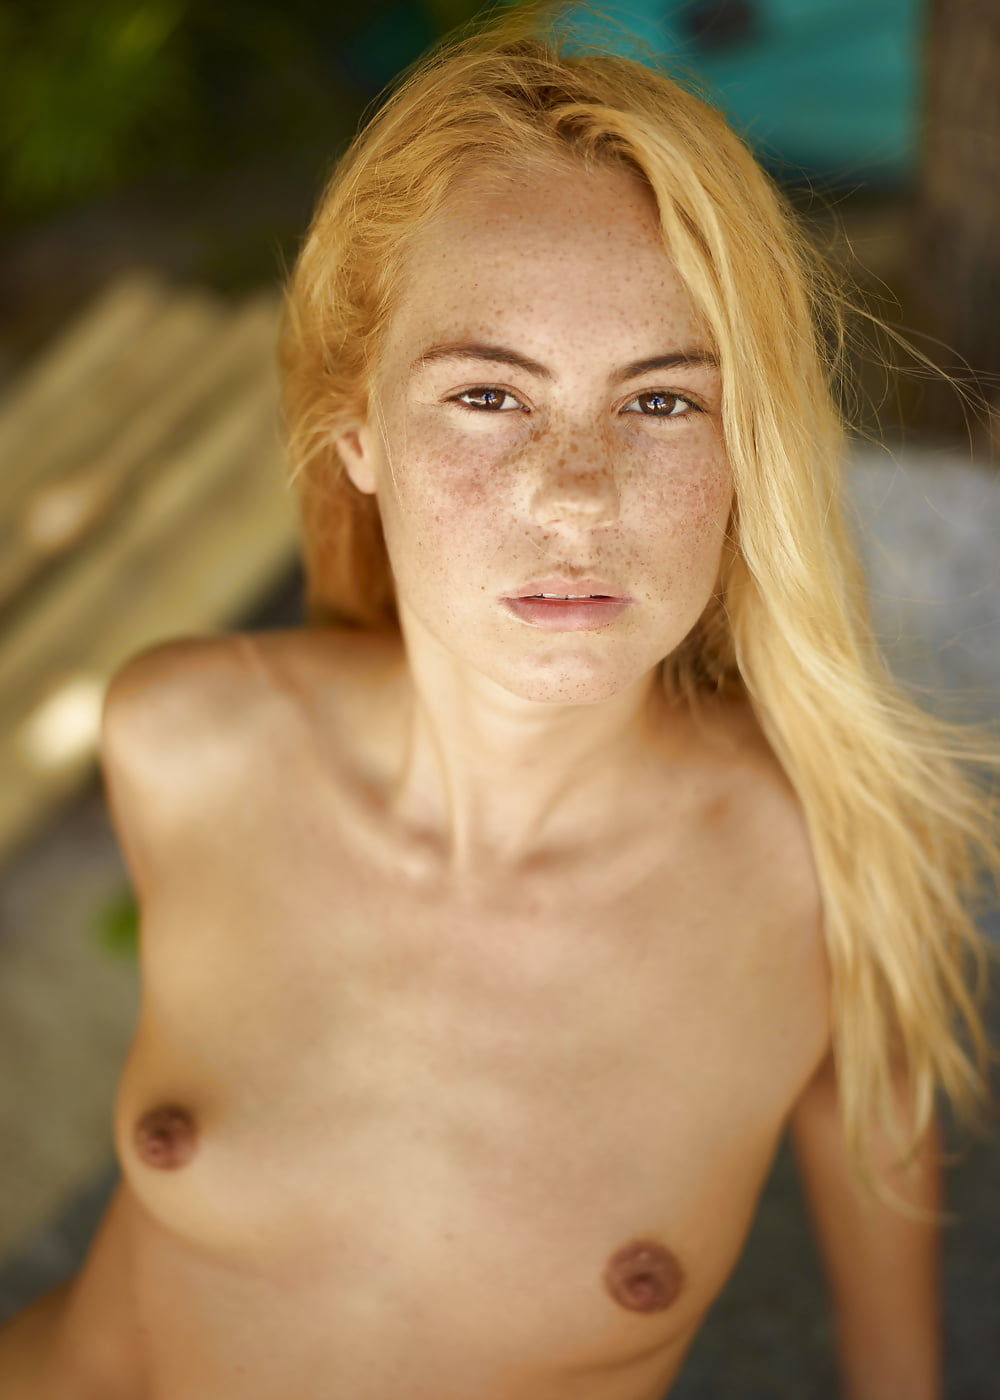 Babe blonde freckles nude